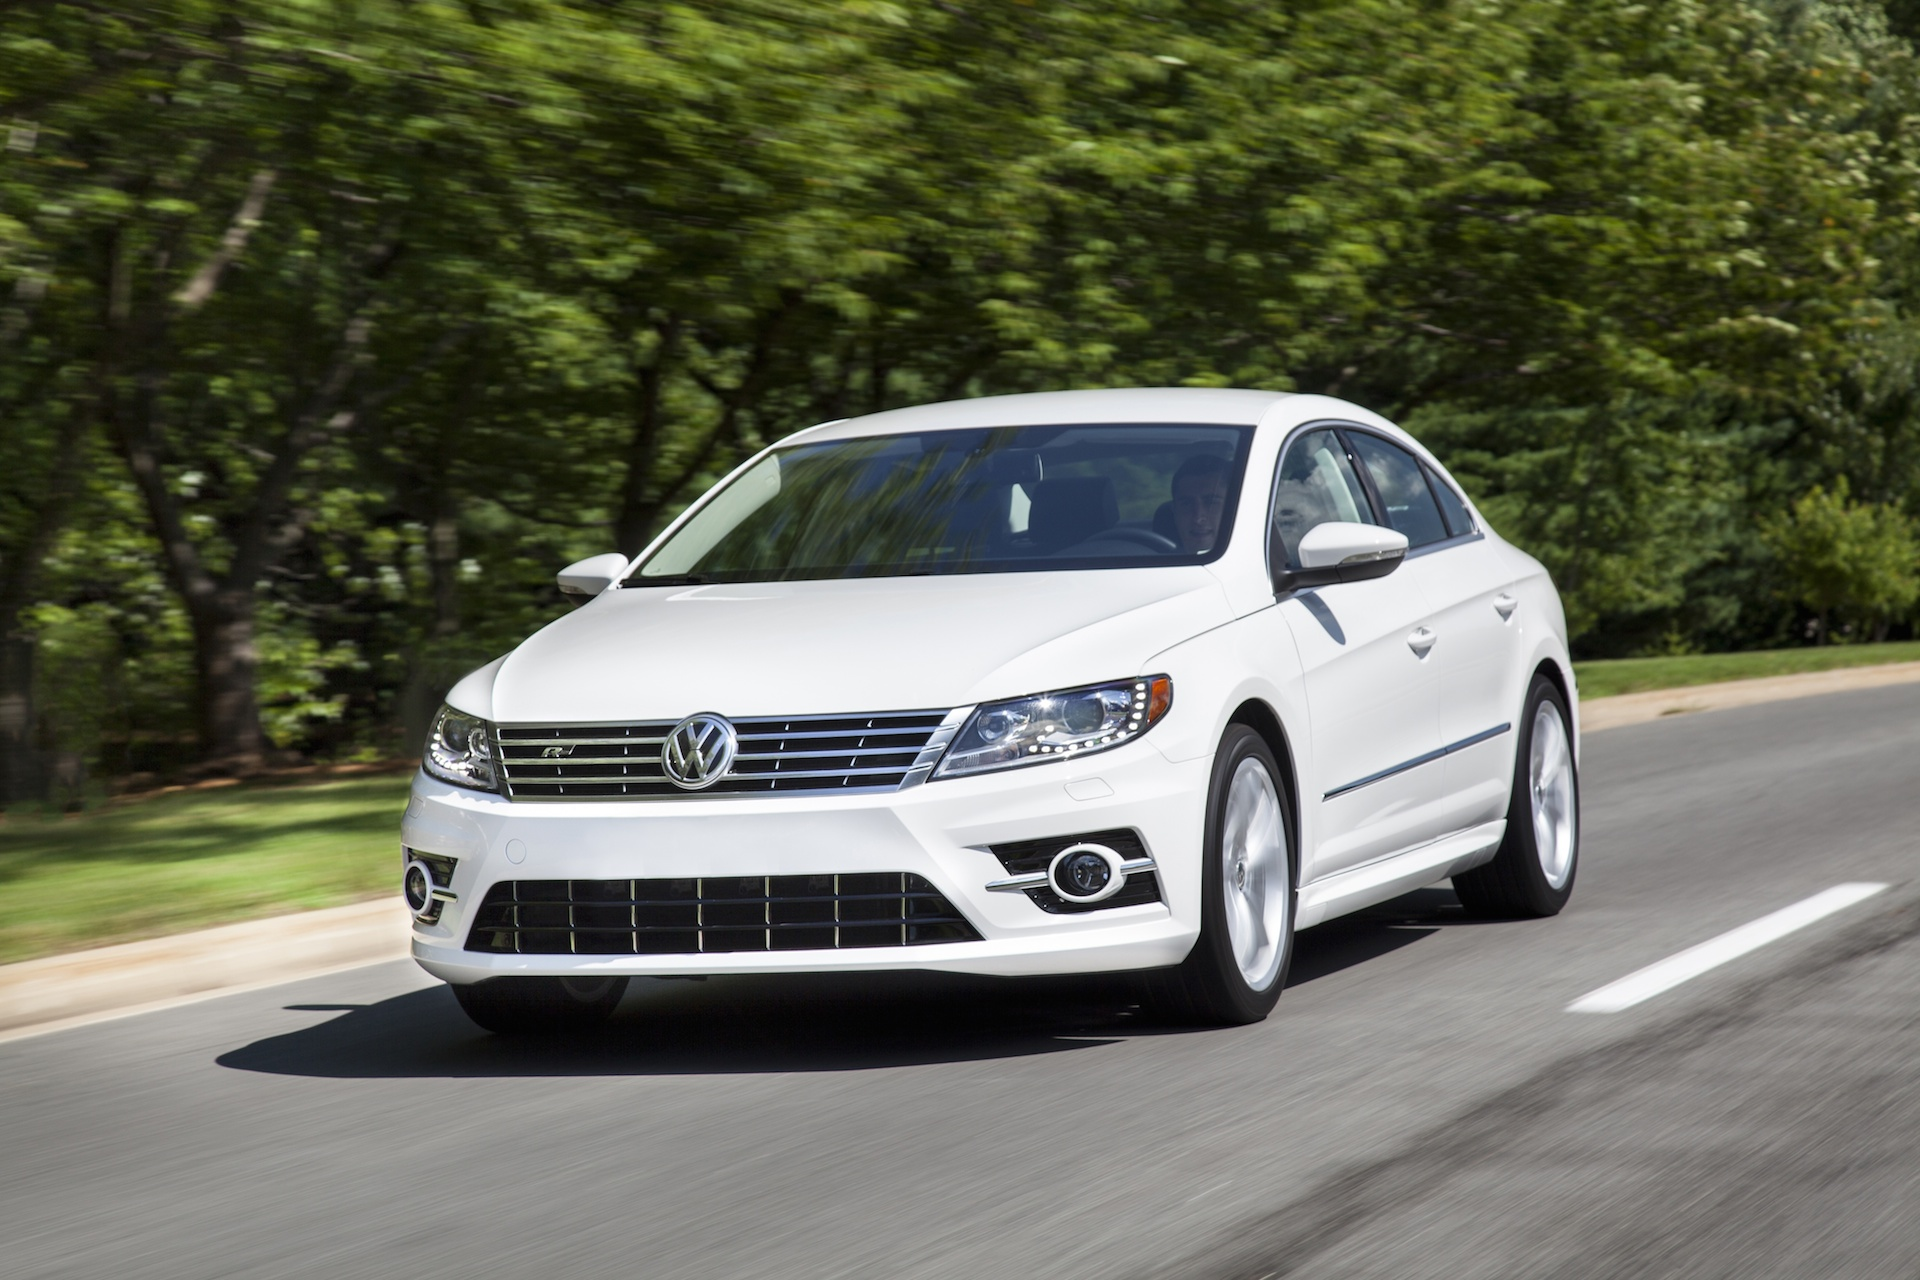 2015 volkswagen cc vw review ratings specs prices. Black Bedroom Furniture Sets. Home Design Ideas